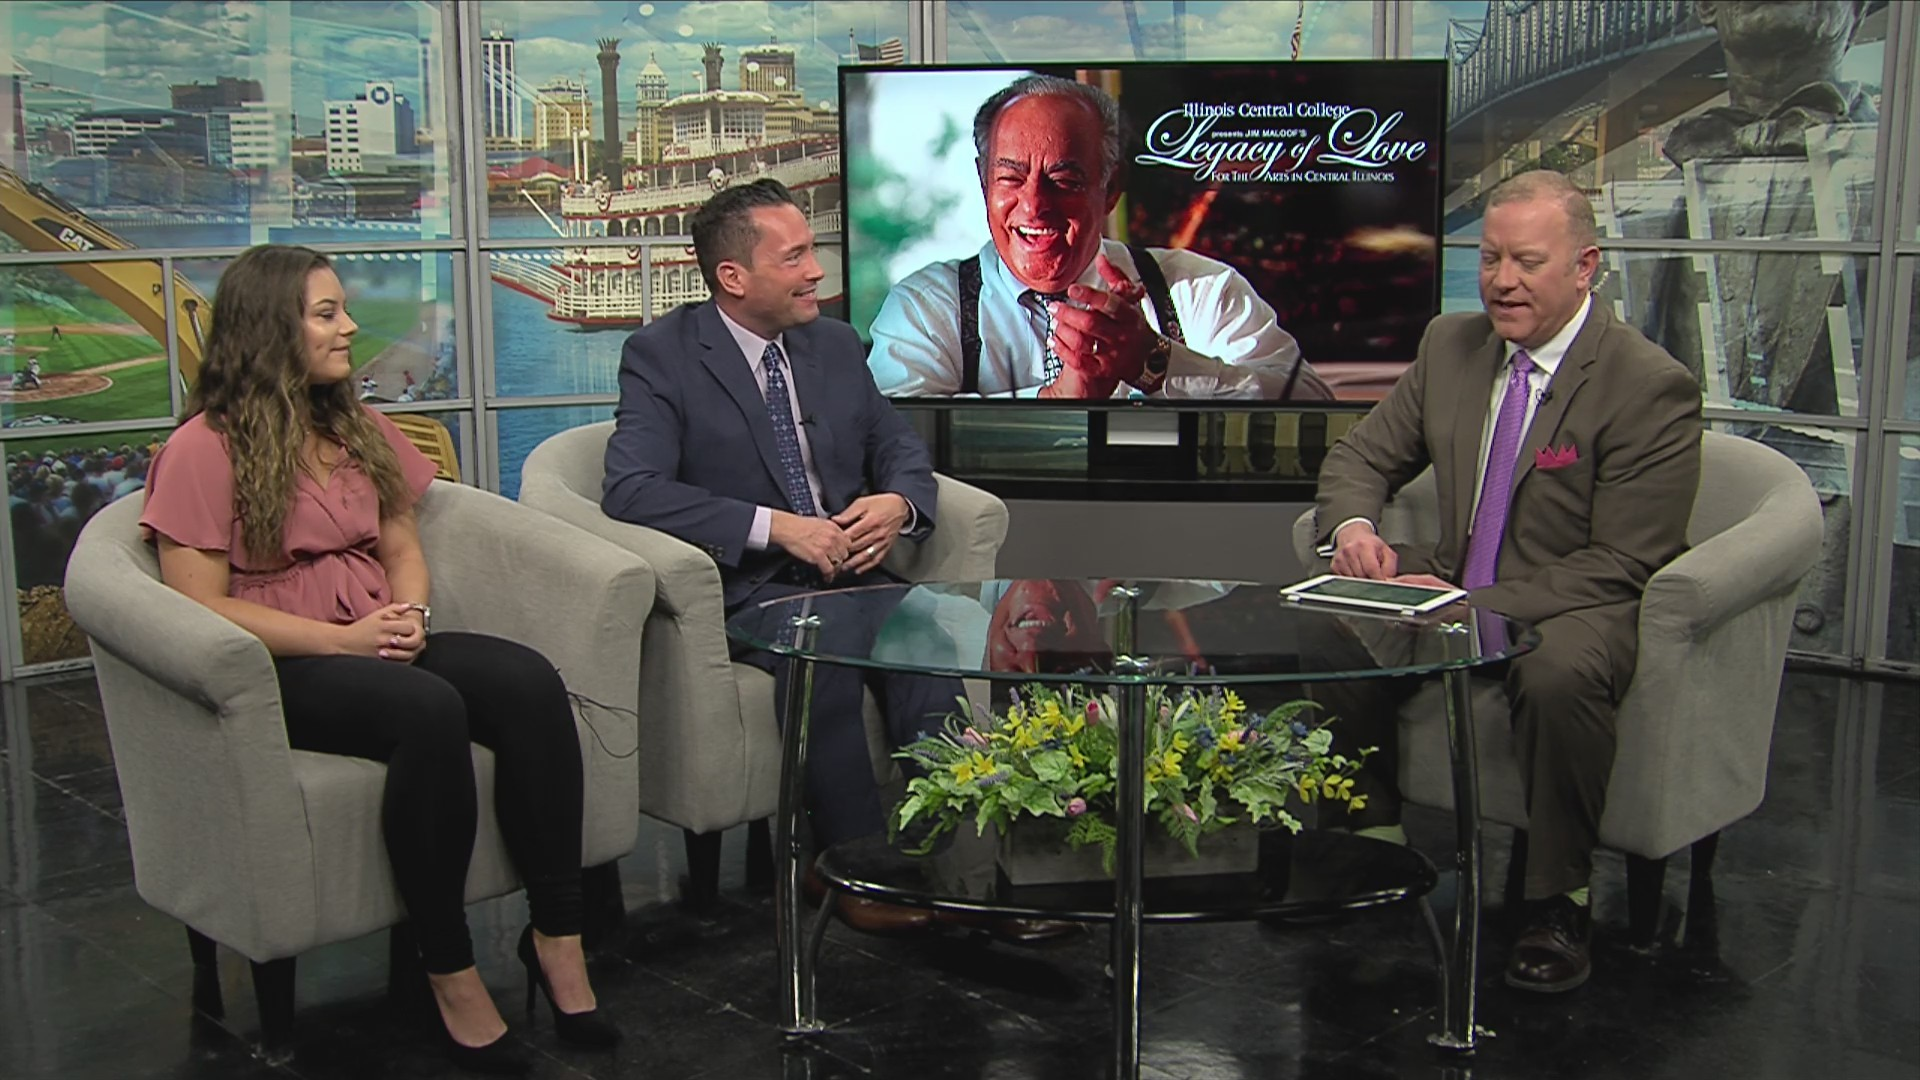 WMBD This Morning: Legacy of Love for the Arts